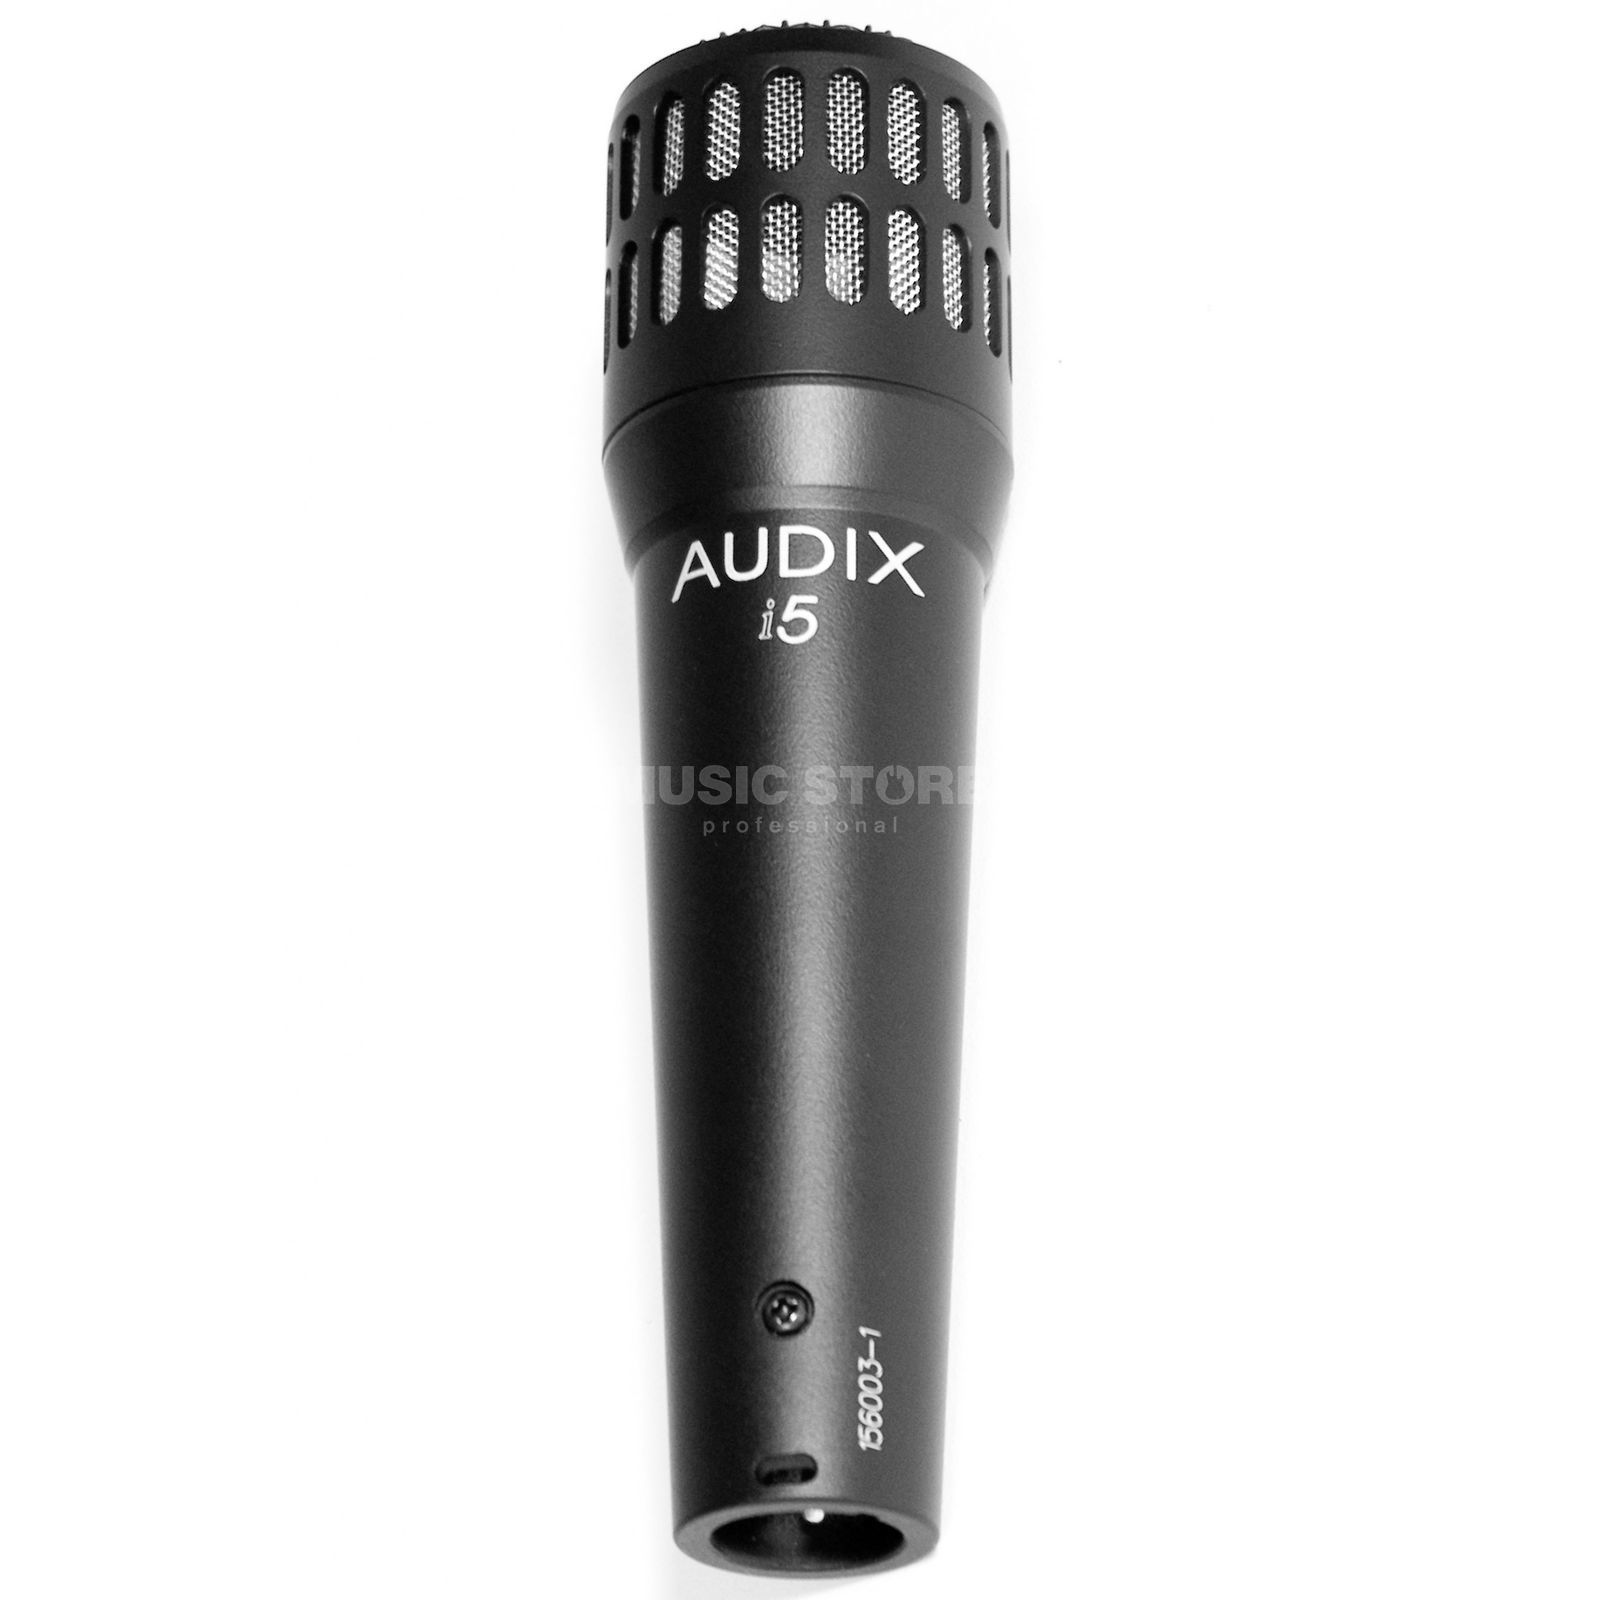 Audix i-5 Microphone f. Snare,Percussion,Hi-Hat,Tom Product Image